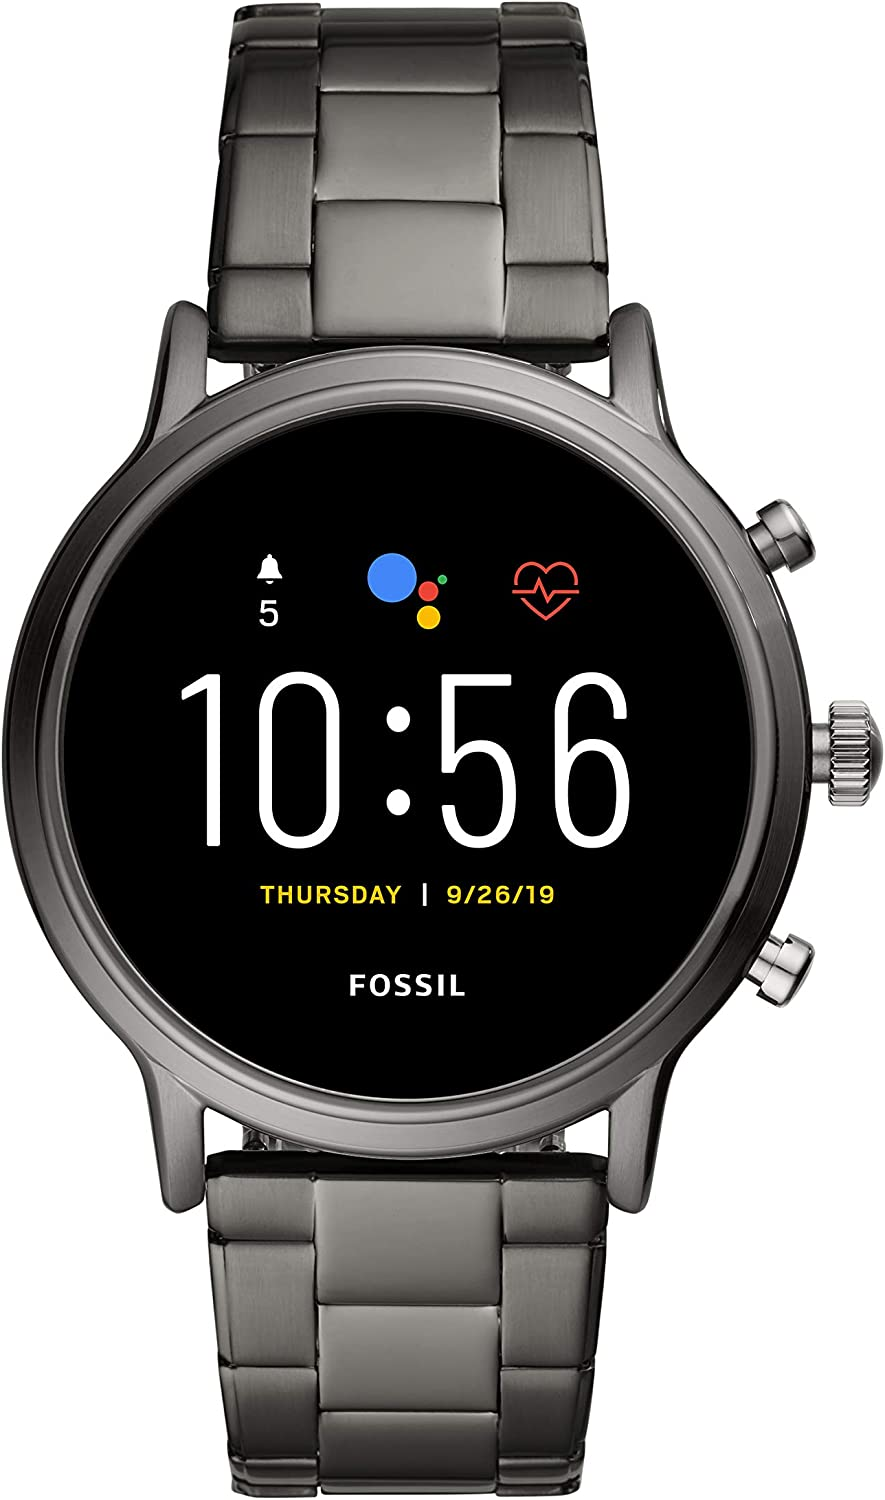 Fossil Gen 5 Carlyle Stainless Steel Touchscreen Smartwatch with Speaker, Heart Rate, GPS, NFC, and Smartphone Notifications